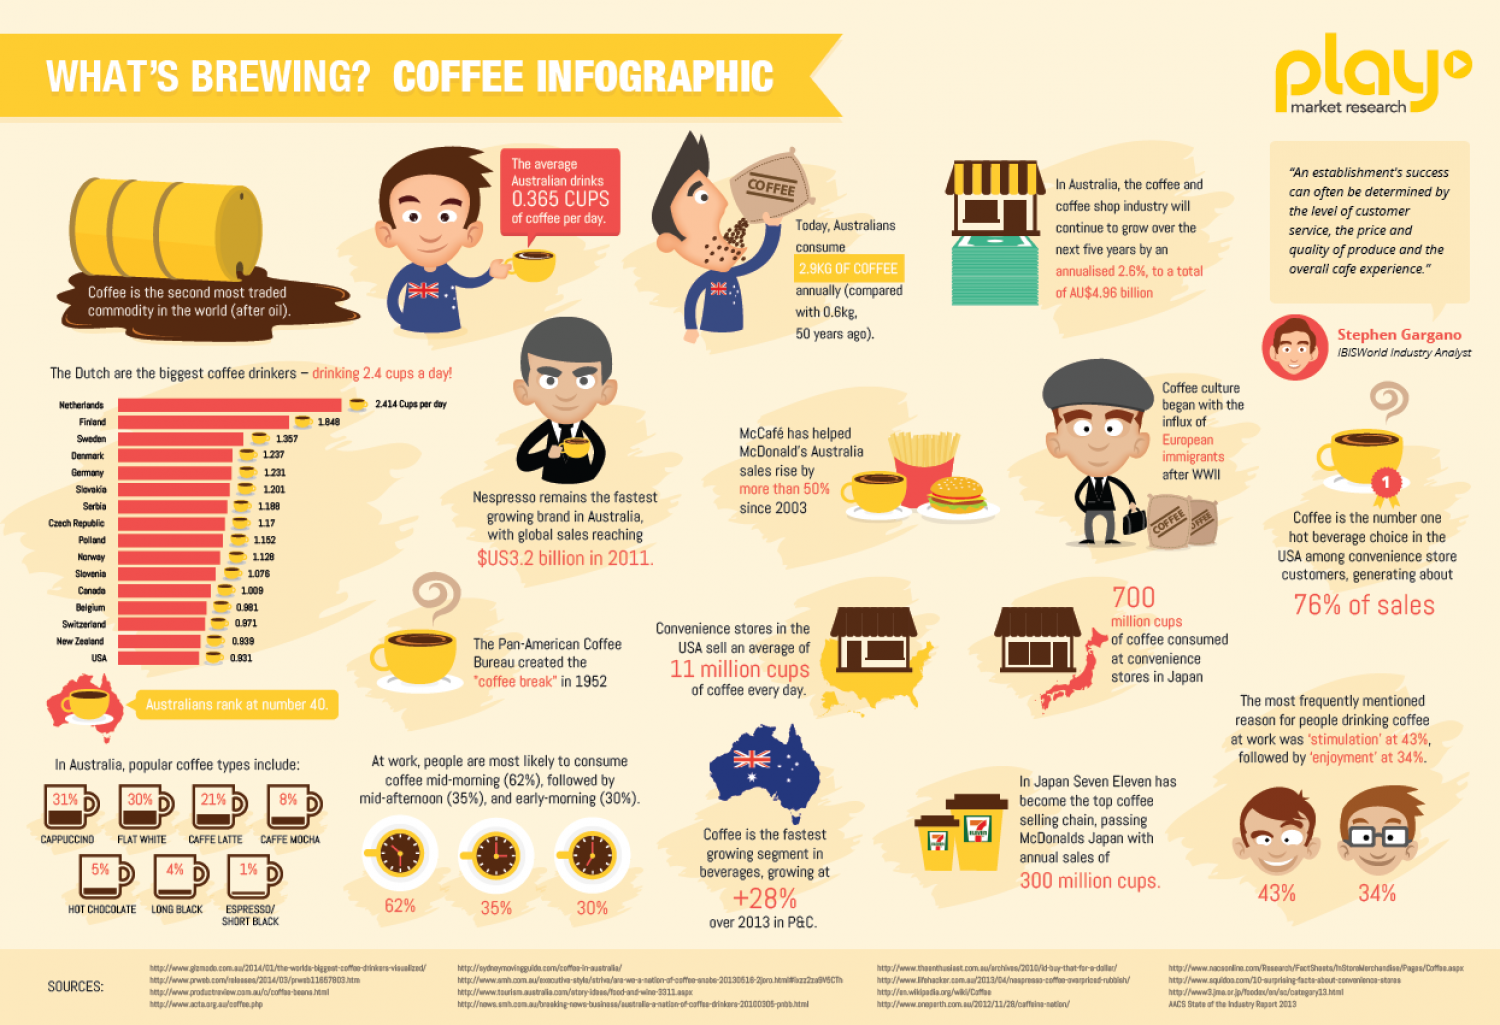 whats-brewing-coffee-infographic_548570c